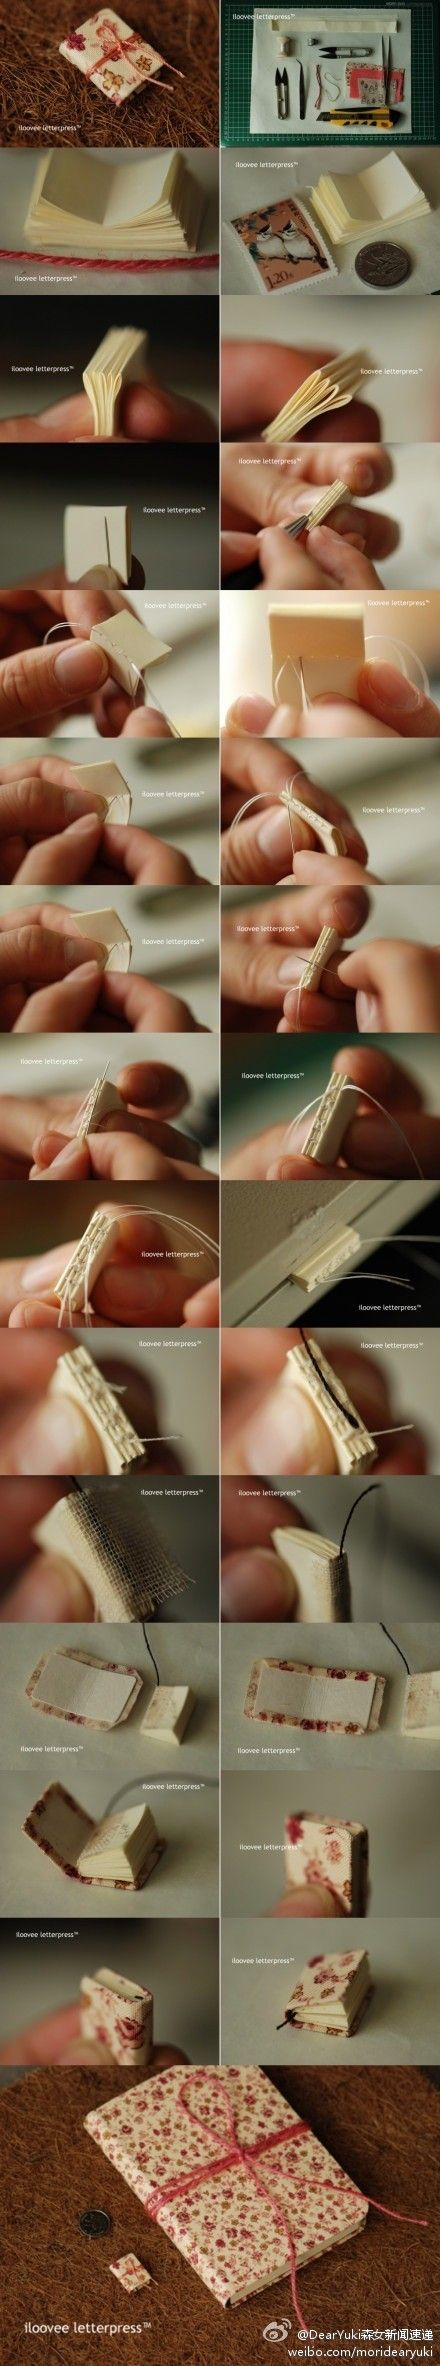 Incredibly detailed pin on how to make those tiny books that fold open flat. I have tried to do this before, but never had clear instructions, this may work way better! Off to try again when this quarter is out!